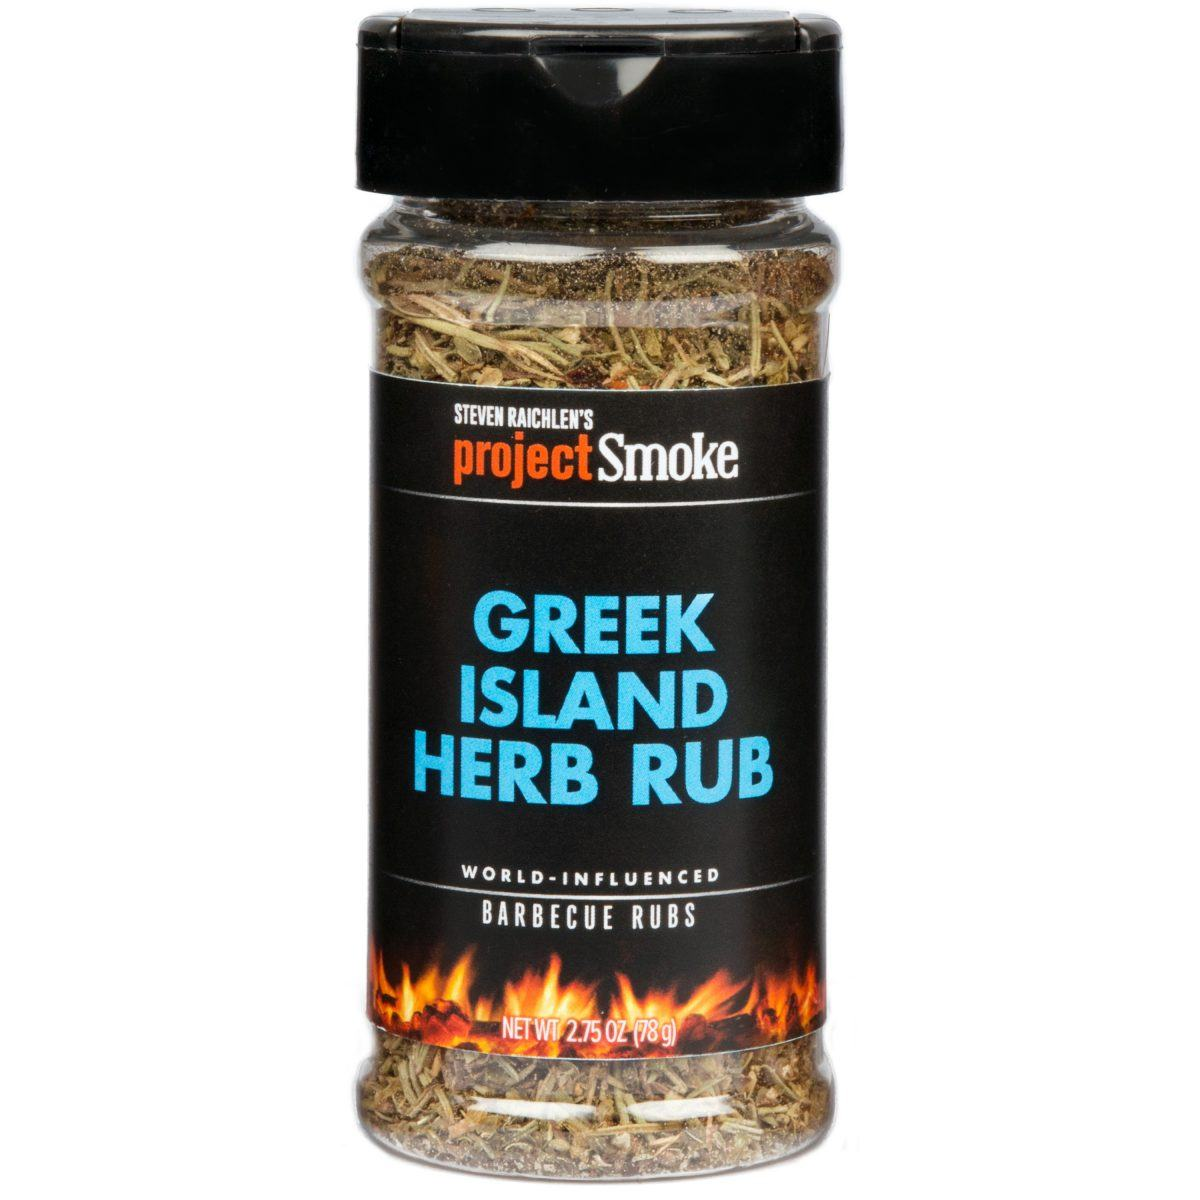 Project Smoke Greek Island Herb Rub